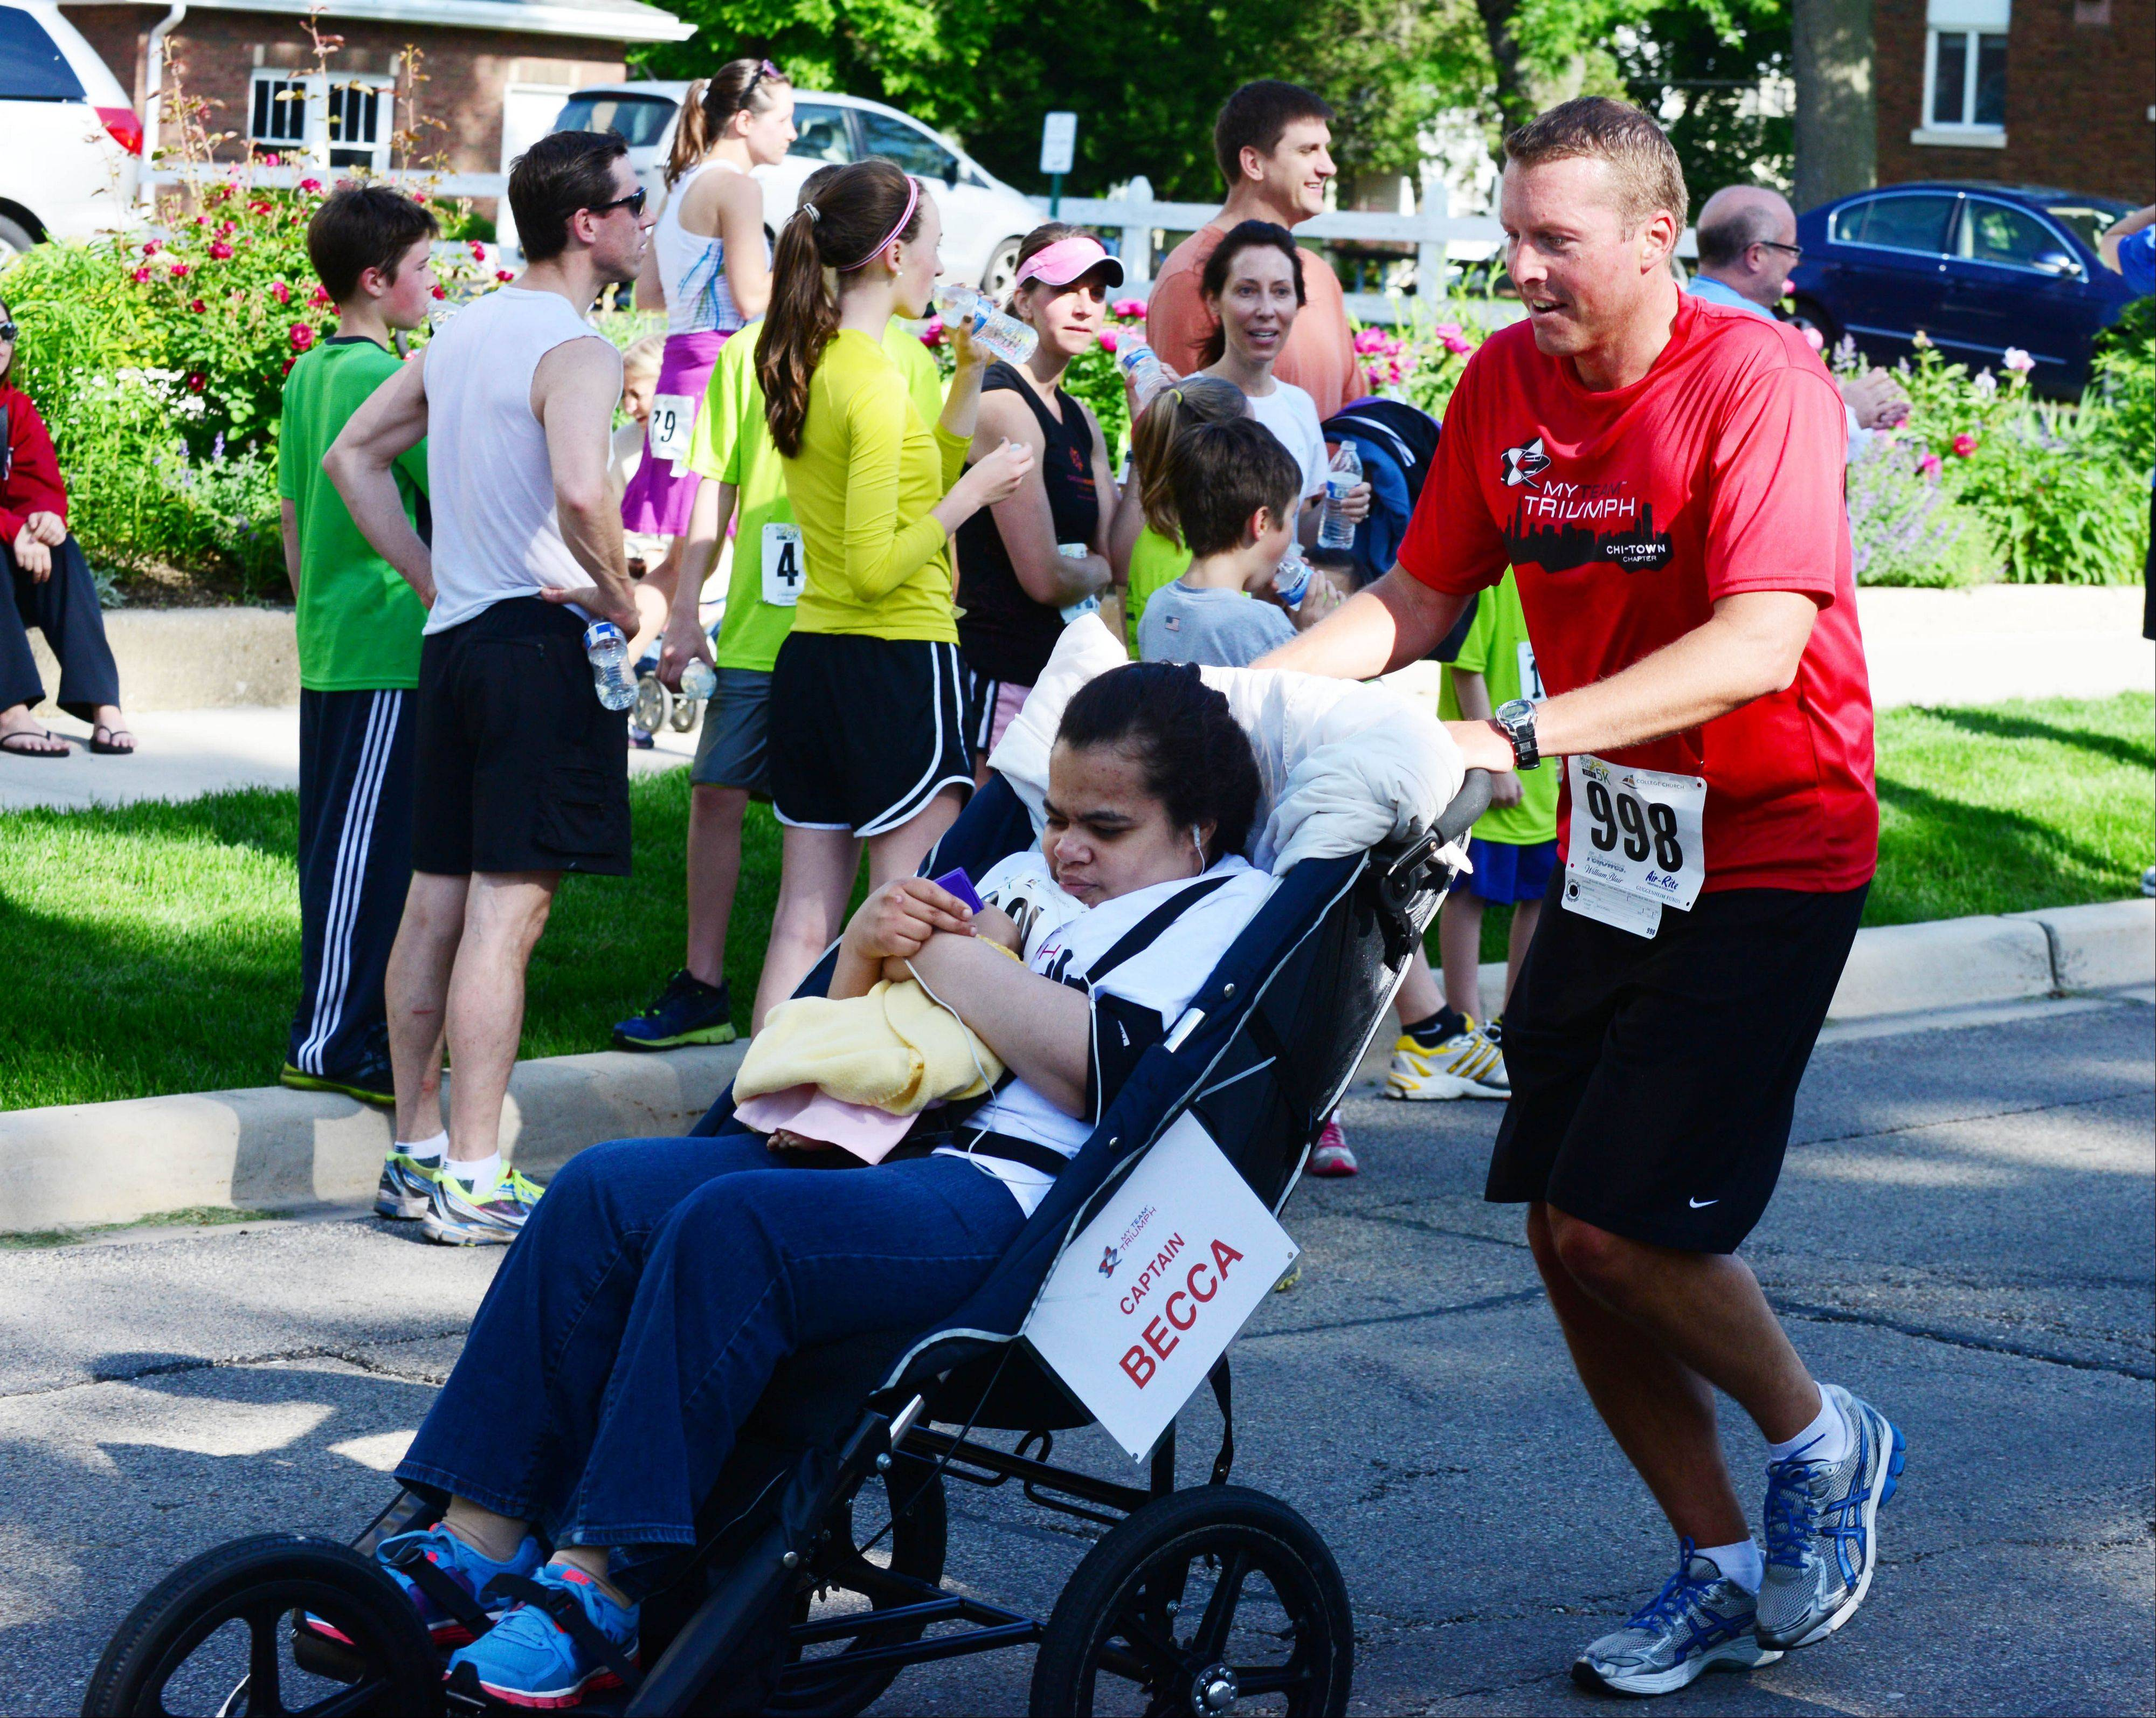 MyTeam Triumph President Brian Merkle of Naperville pushes Becca Tally across the finish line at Wheaton's Run For The Stars 5K race Saturday. A group of 21 runners helped seven people with disabilities compete in the race.